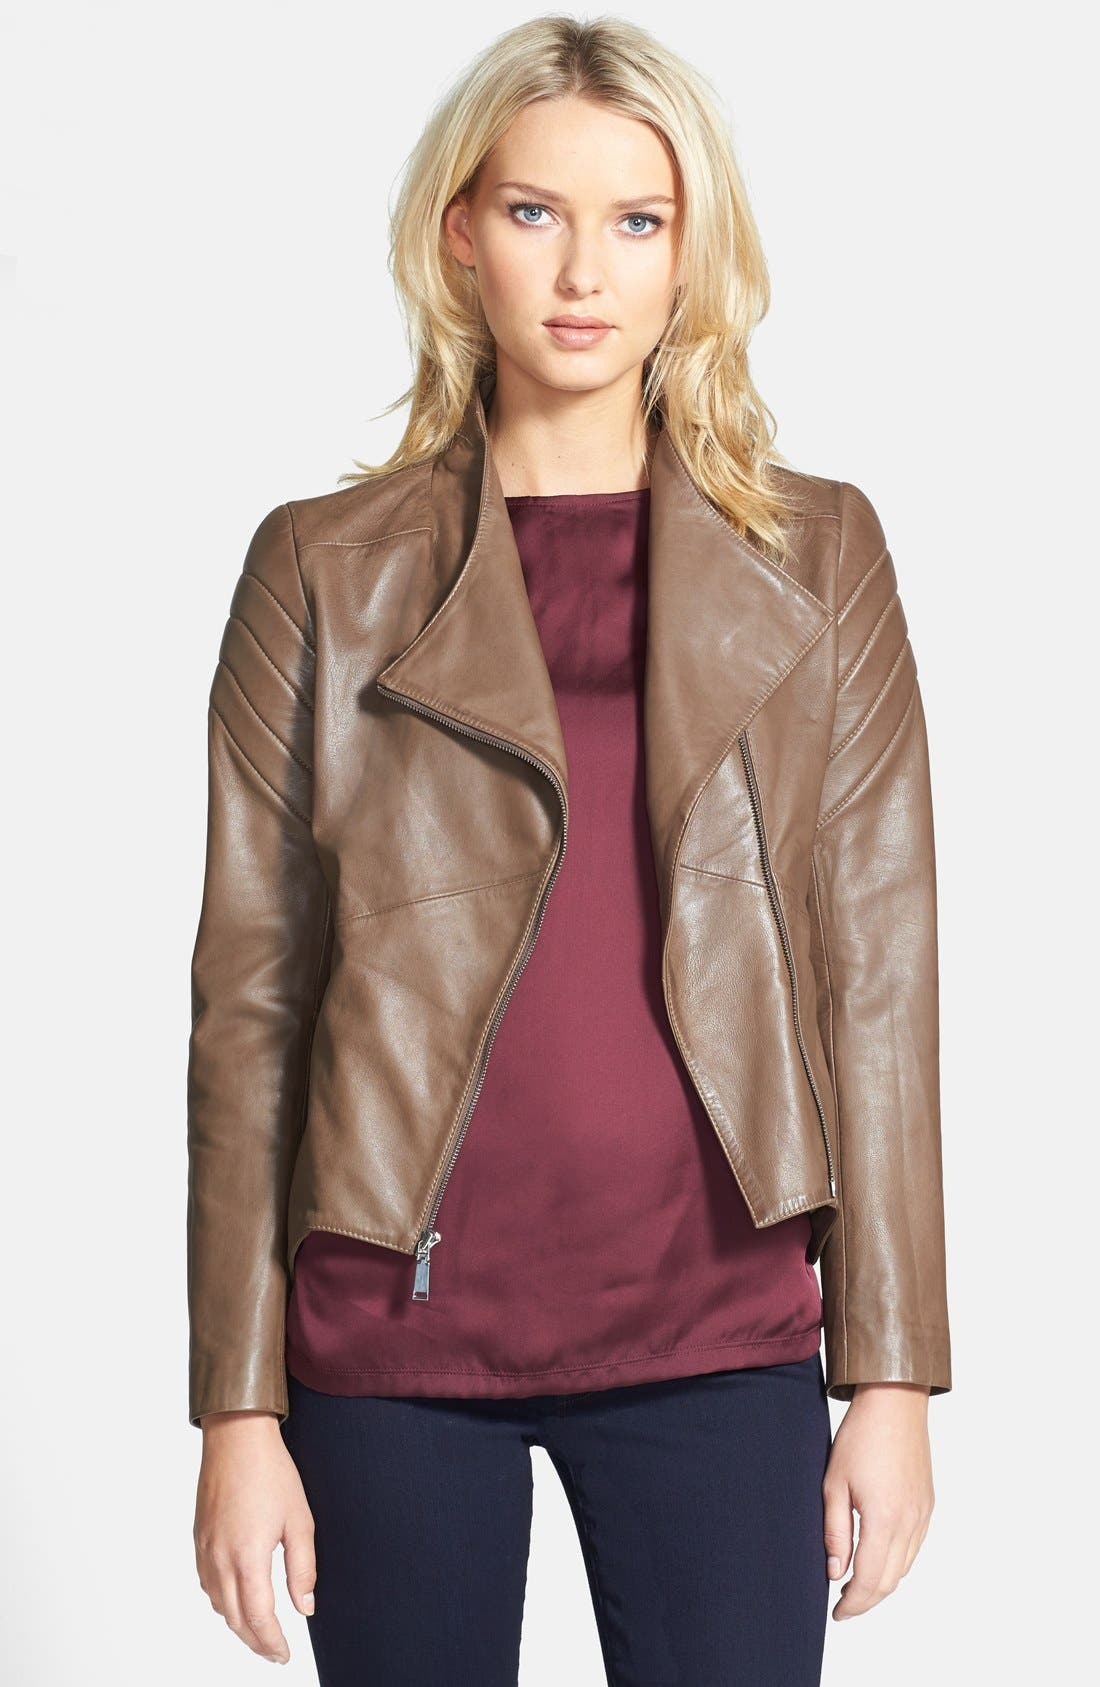 ELIE TAHARI 'Celeste' Asymmetrical Leather Moto Jacket, Main, color, 200